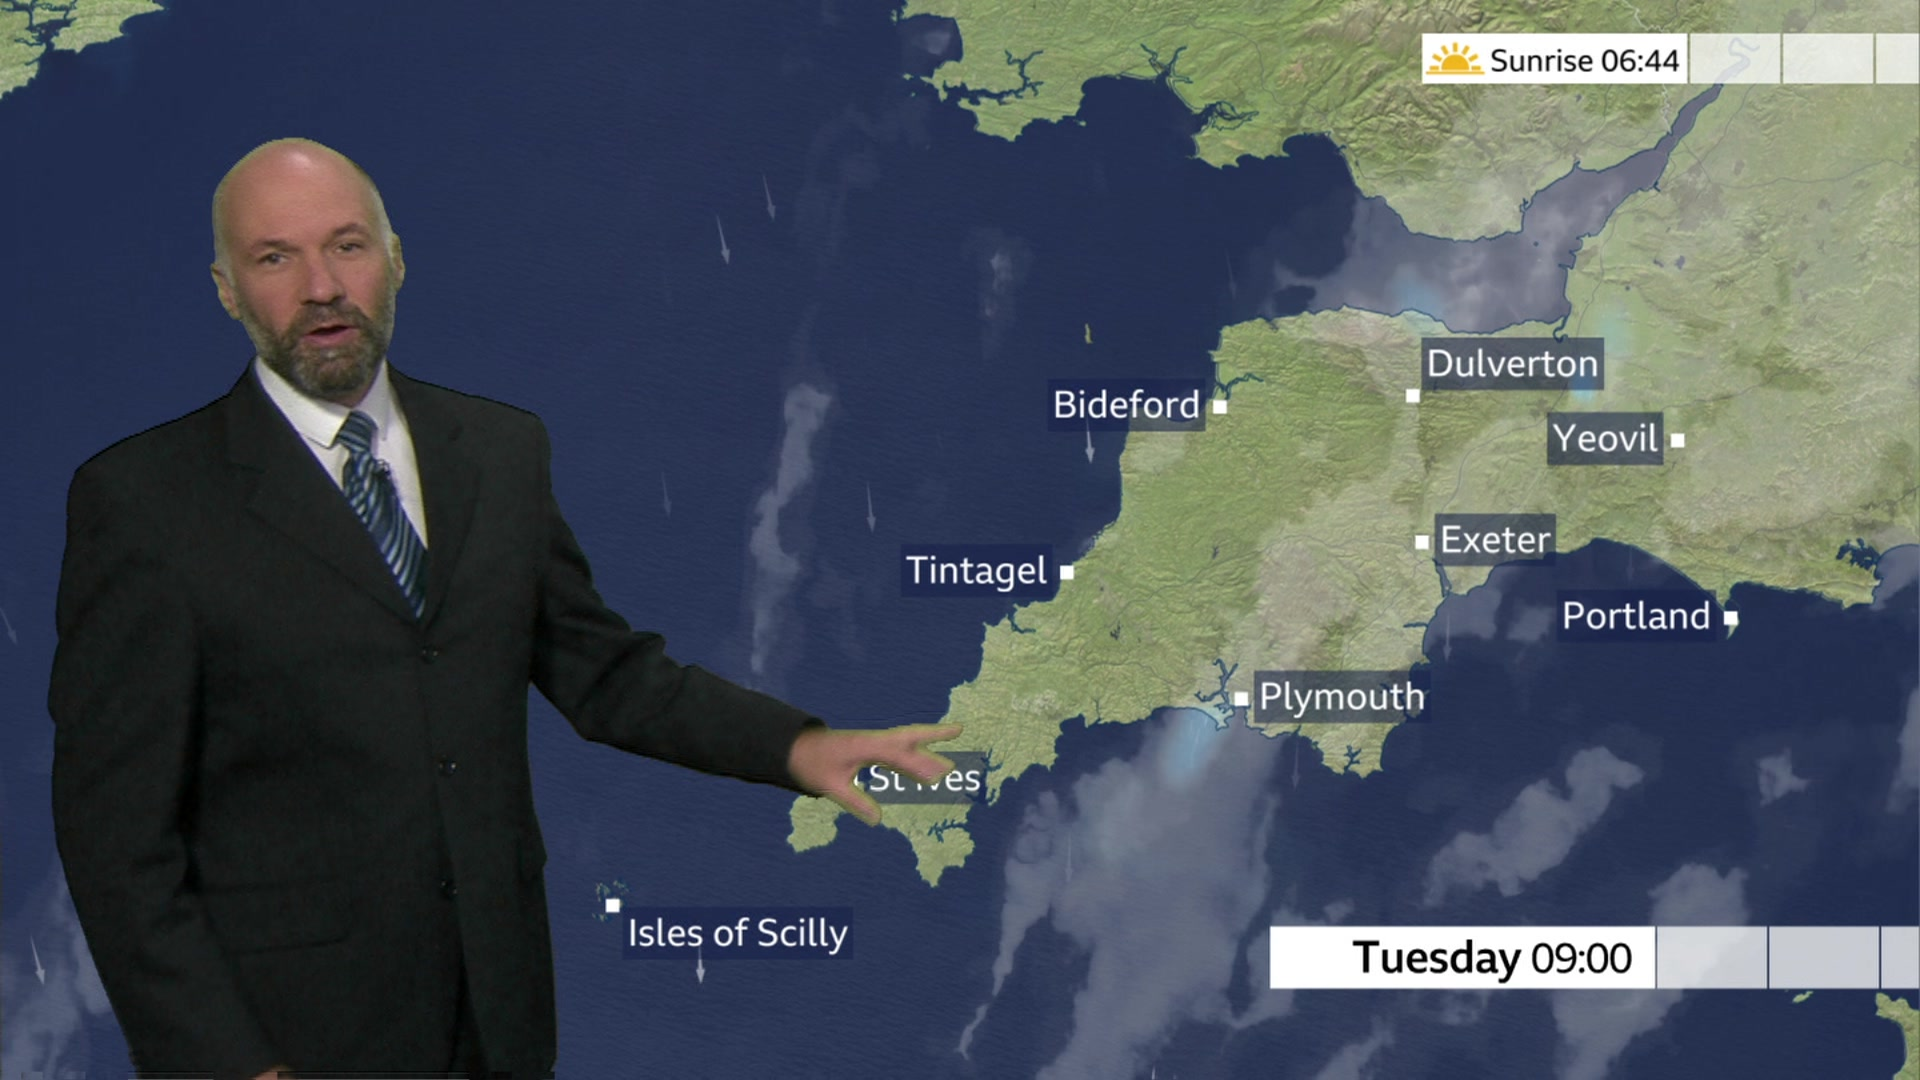 Devon and Cornwall weather: Rain clearing for sunny spells